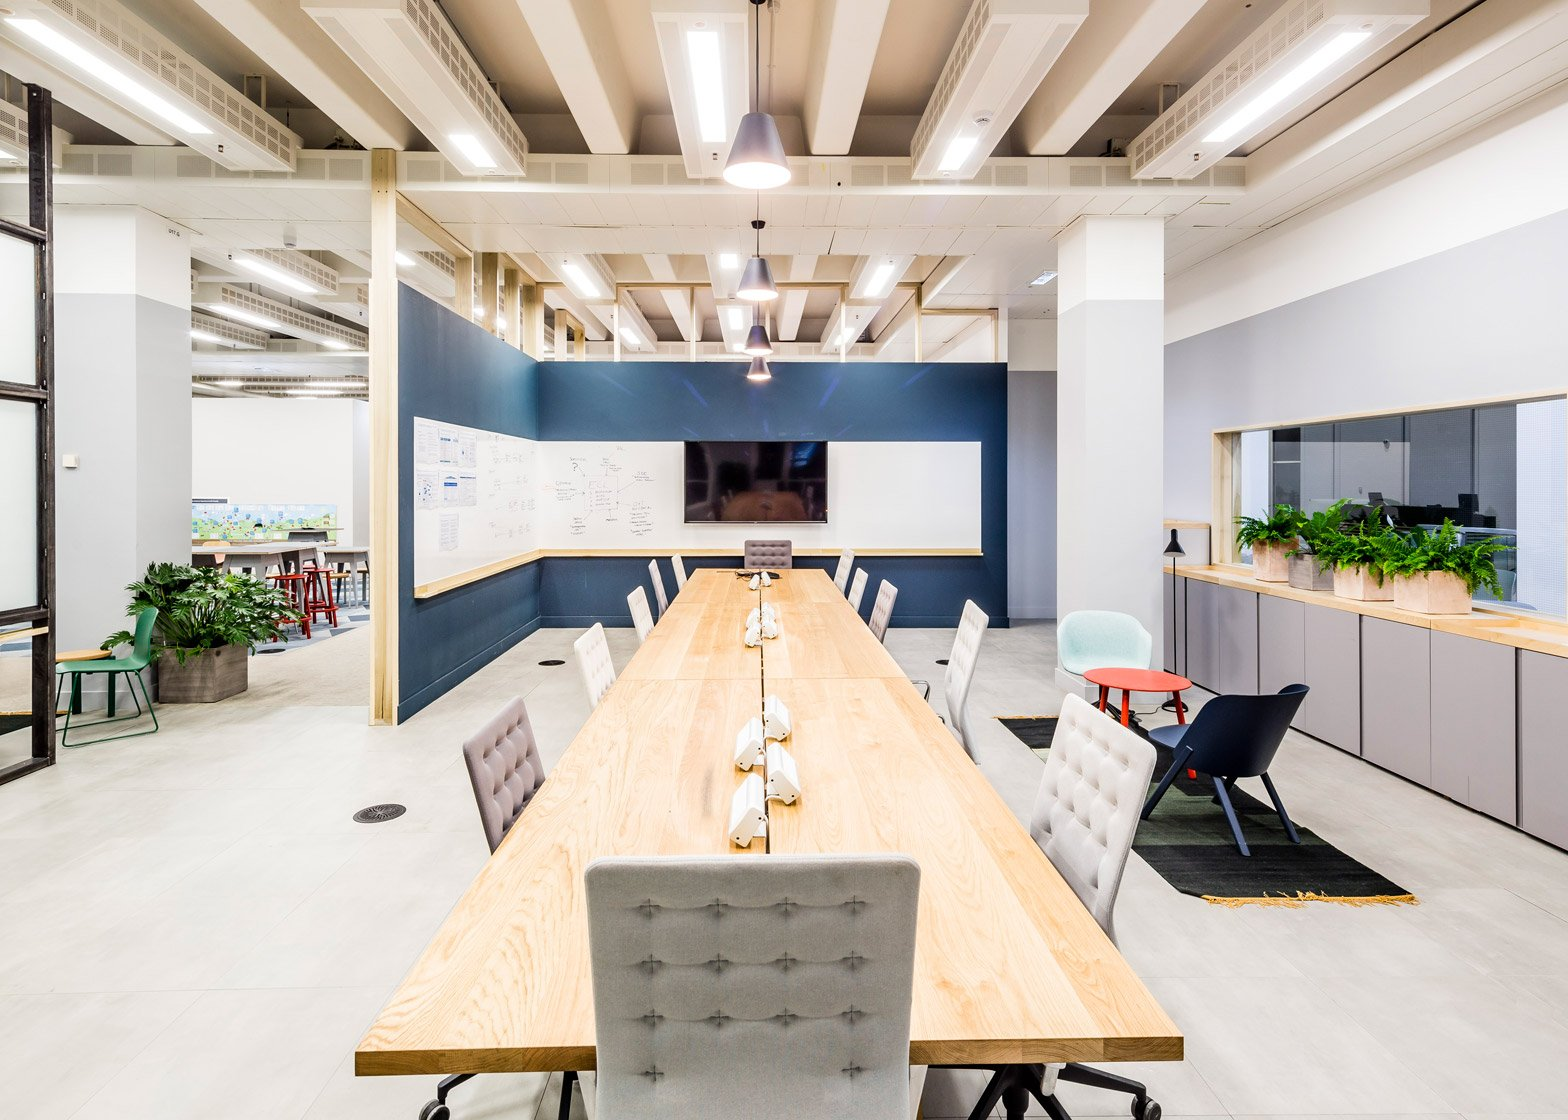 Barclaycard AGILE workplace by APALONDON